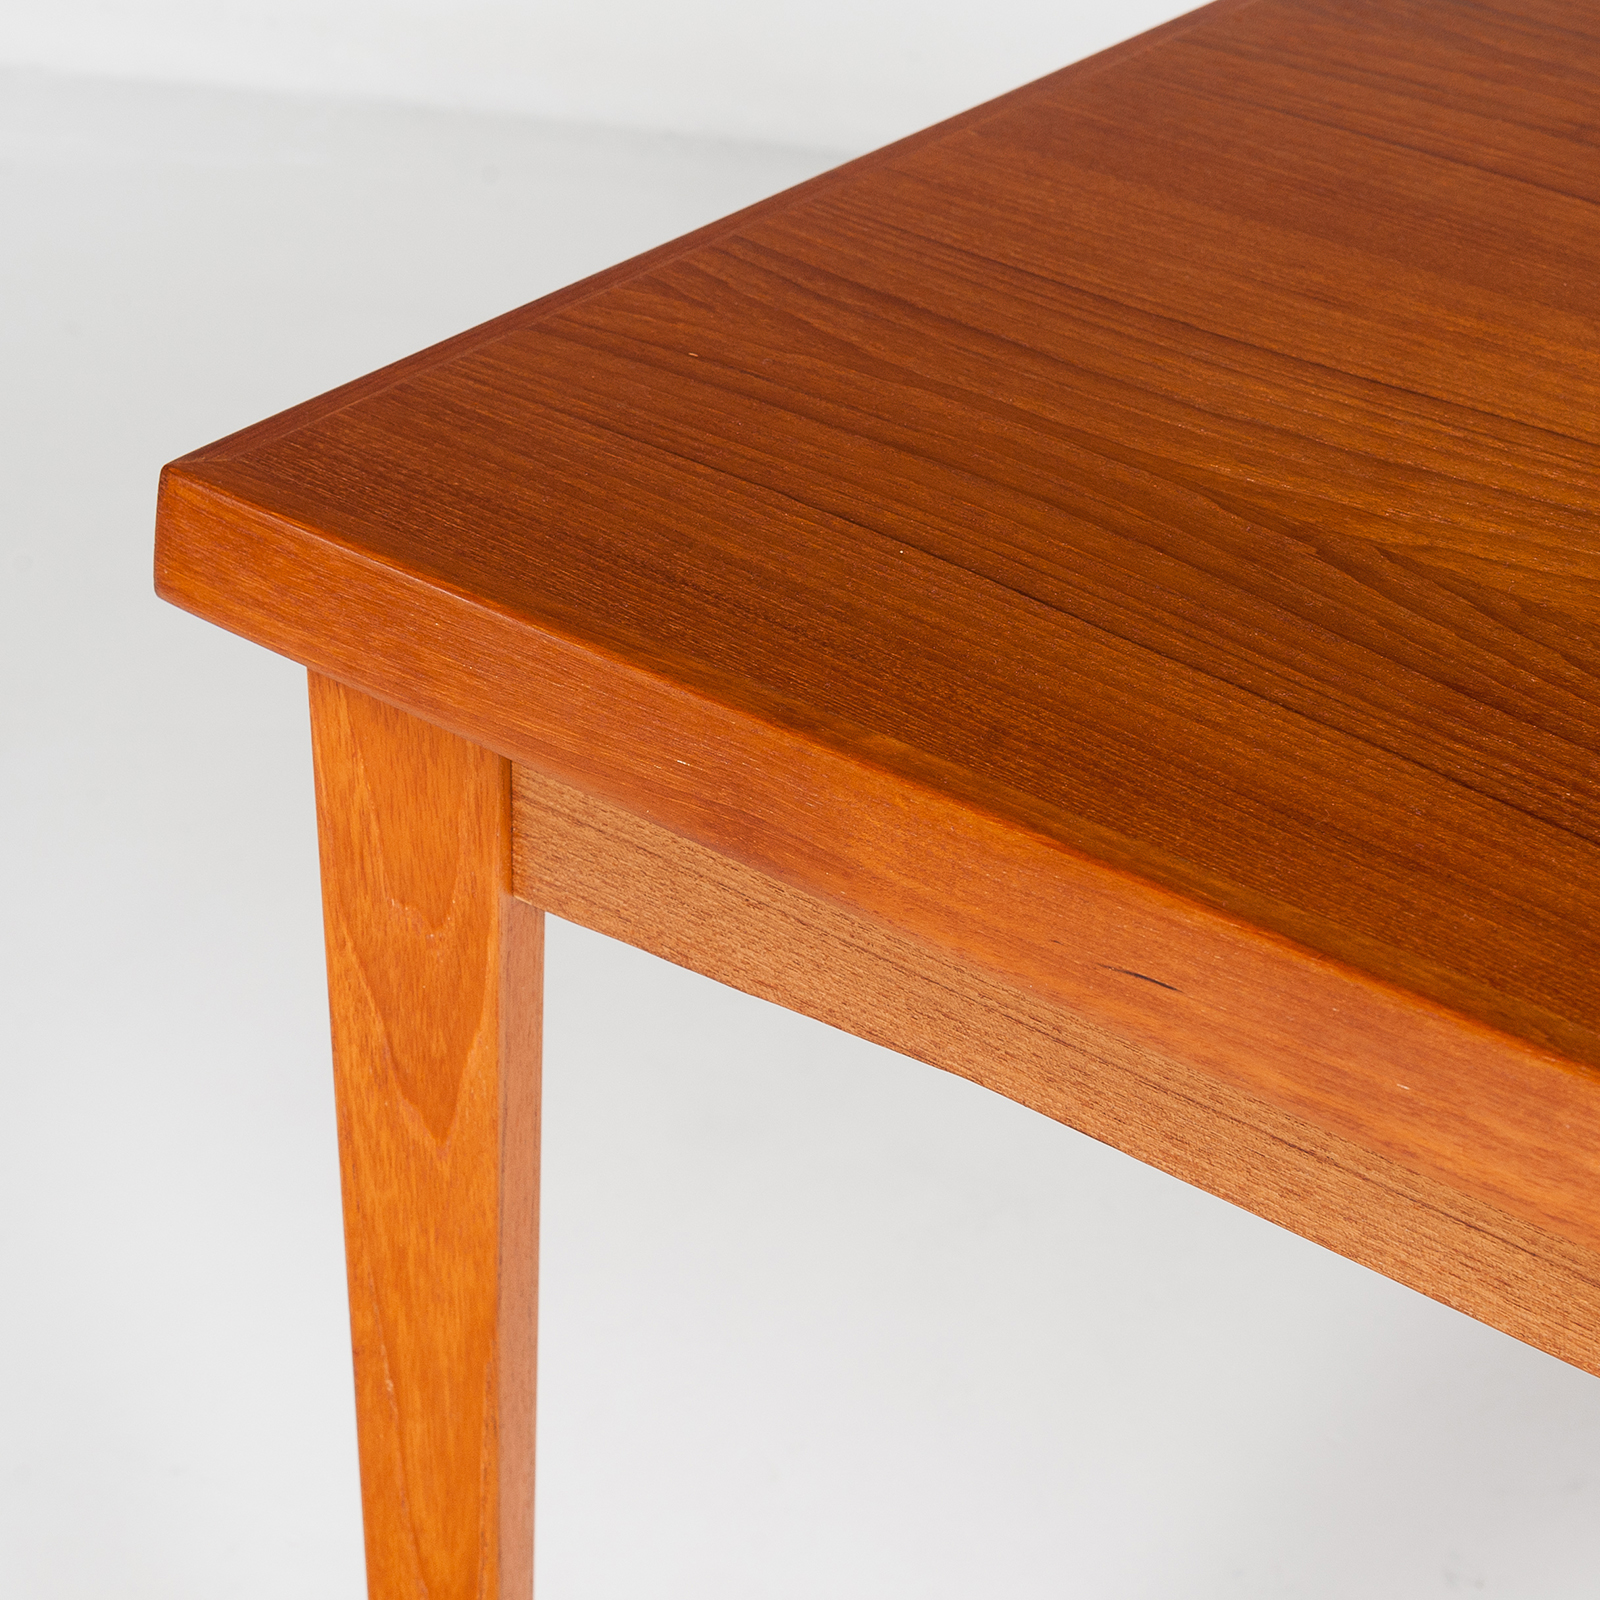 Dining Table In Teak With Concealed Top, 1960s, Denmark24